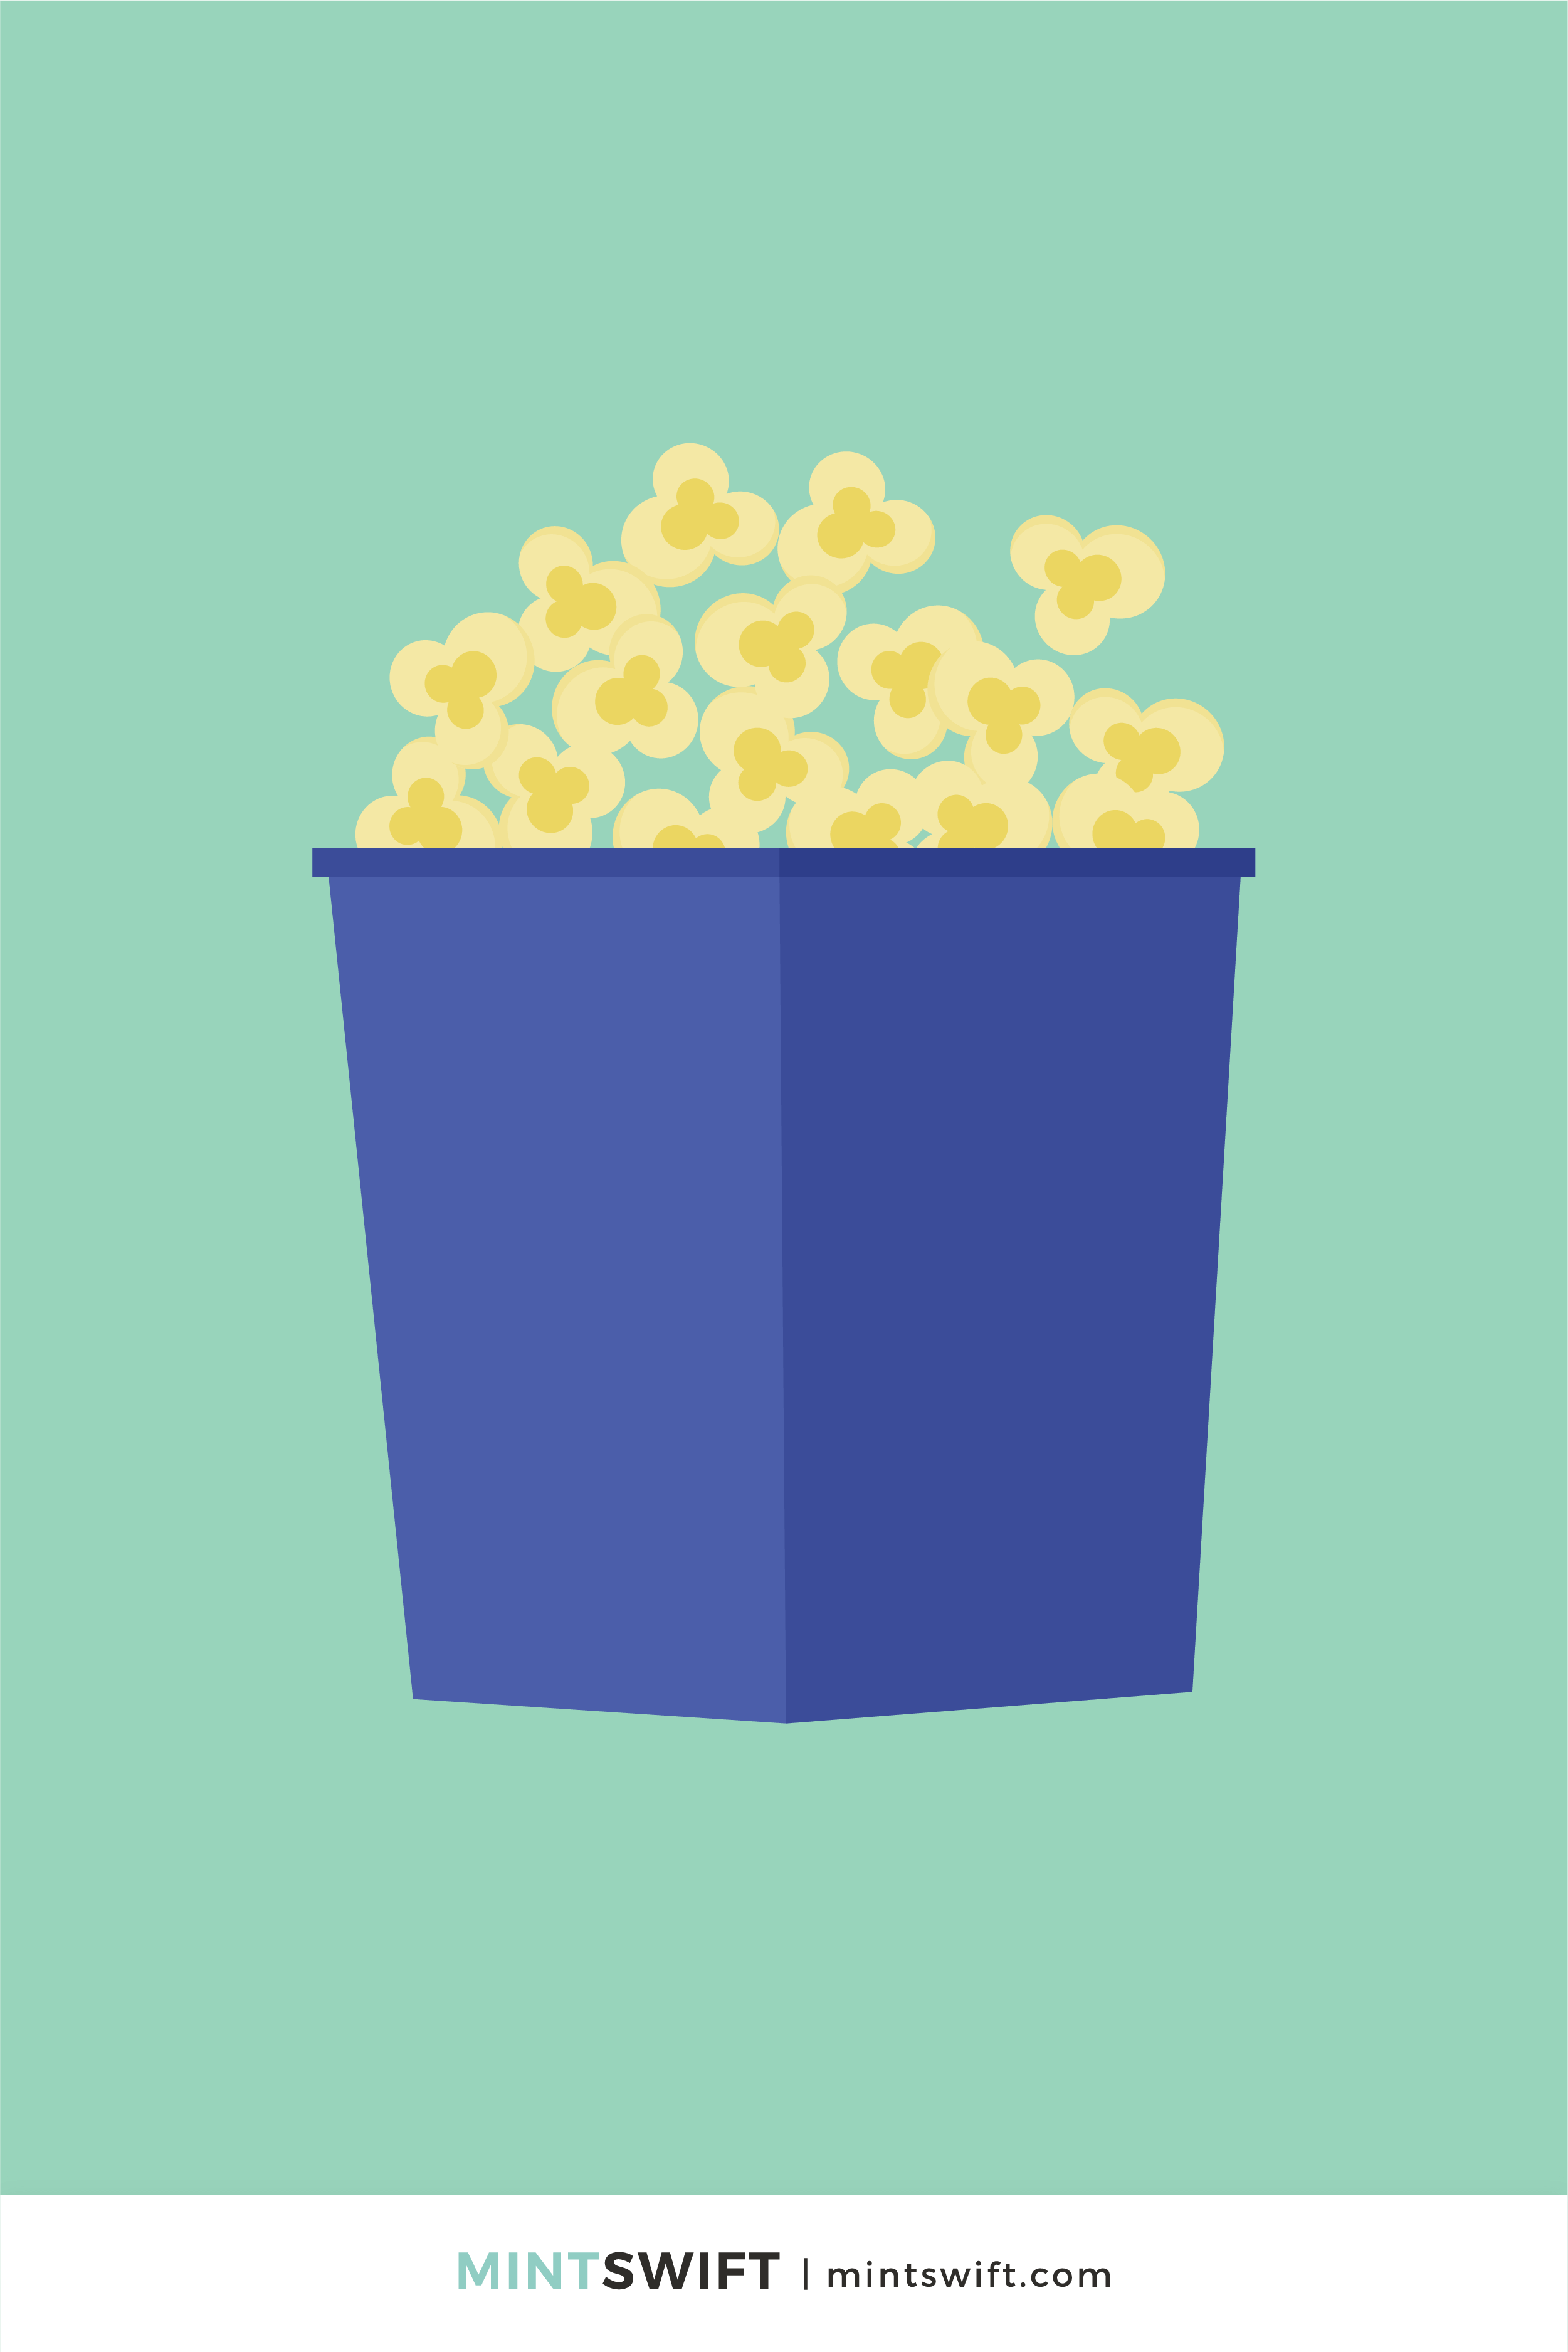 Navy blue bag with popcorn vector illustration in flat design style on a green background